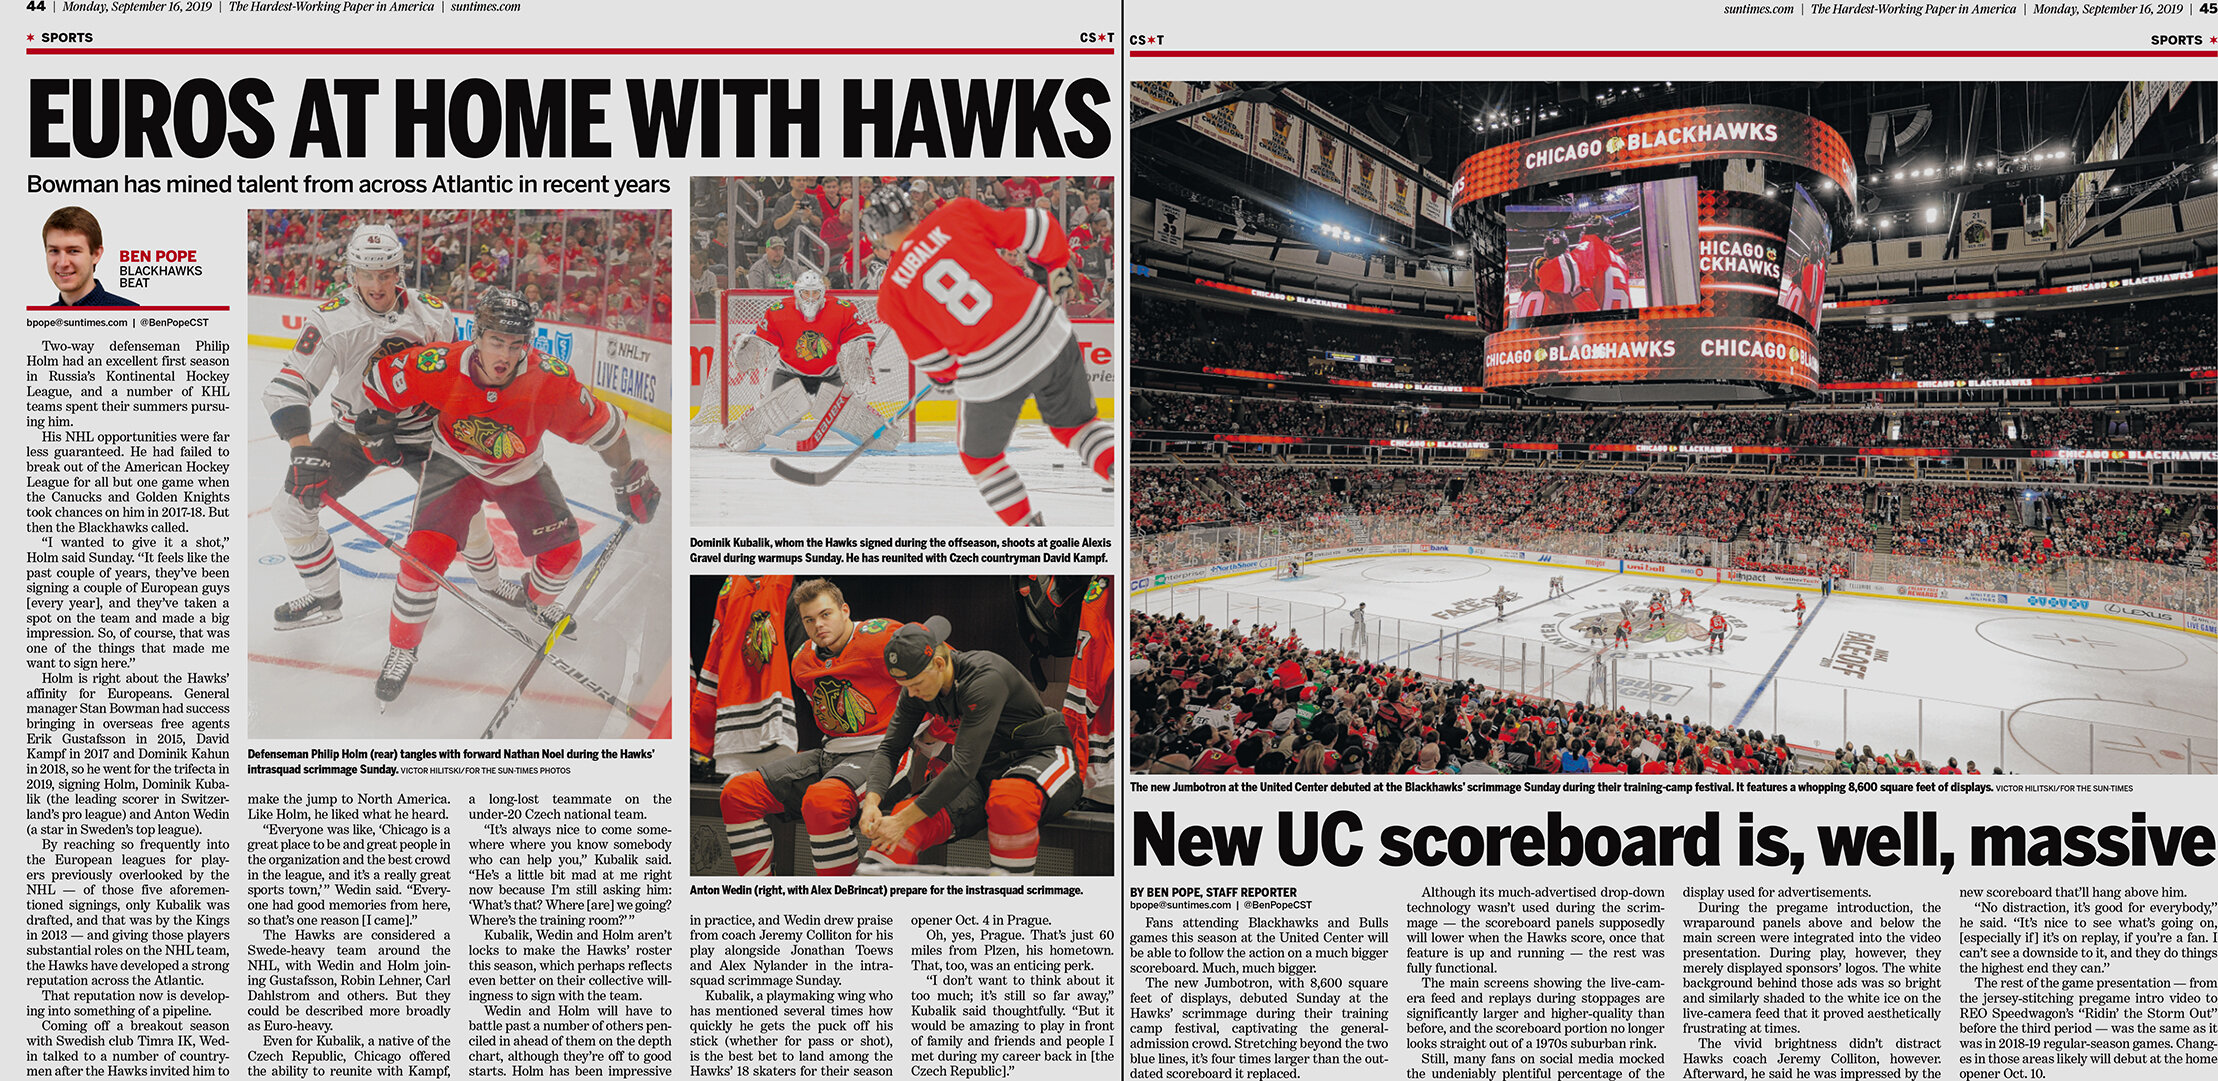 Spread of the Chicago Sun-Times newspaper with coverage of Blackhawks' training camp scrimmage 2019.